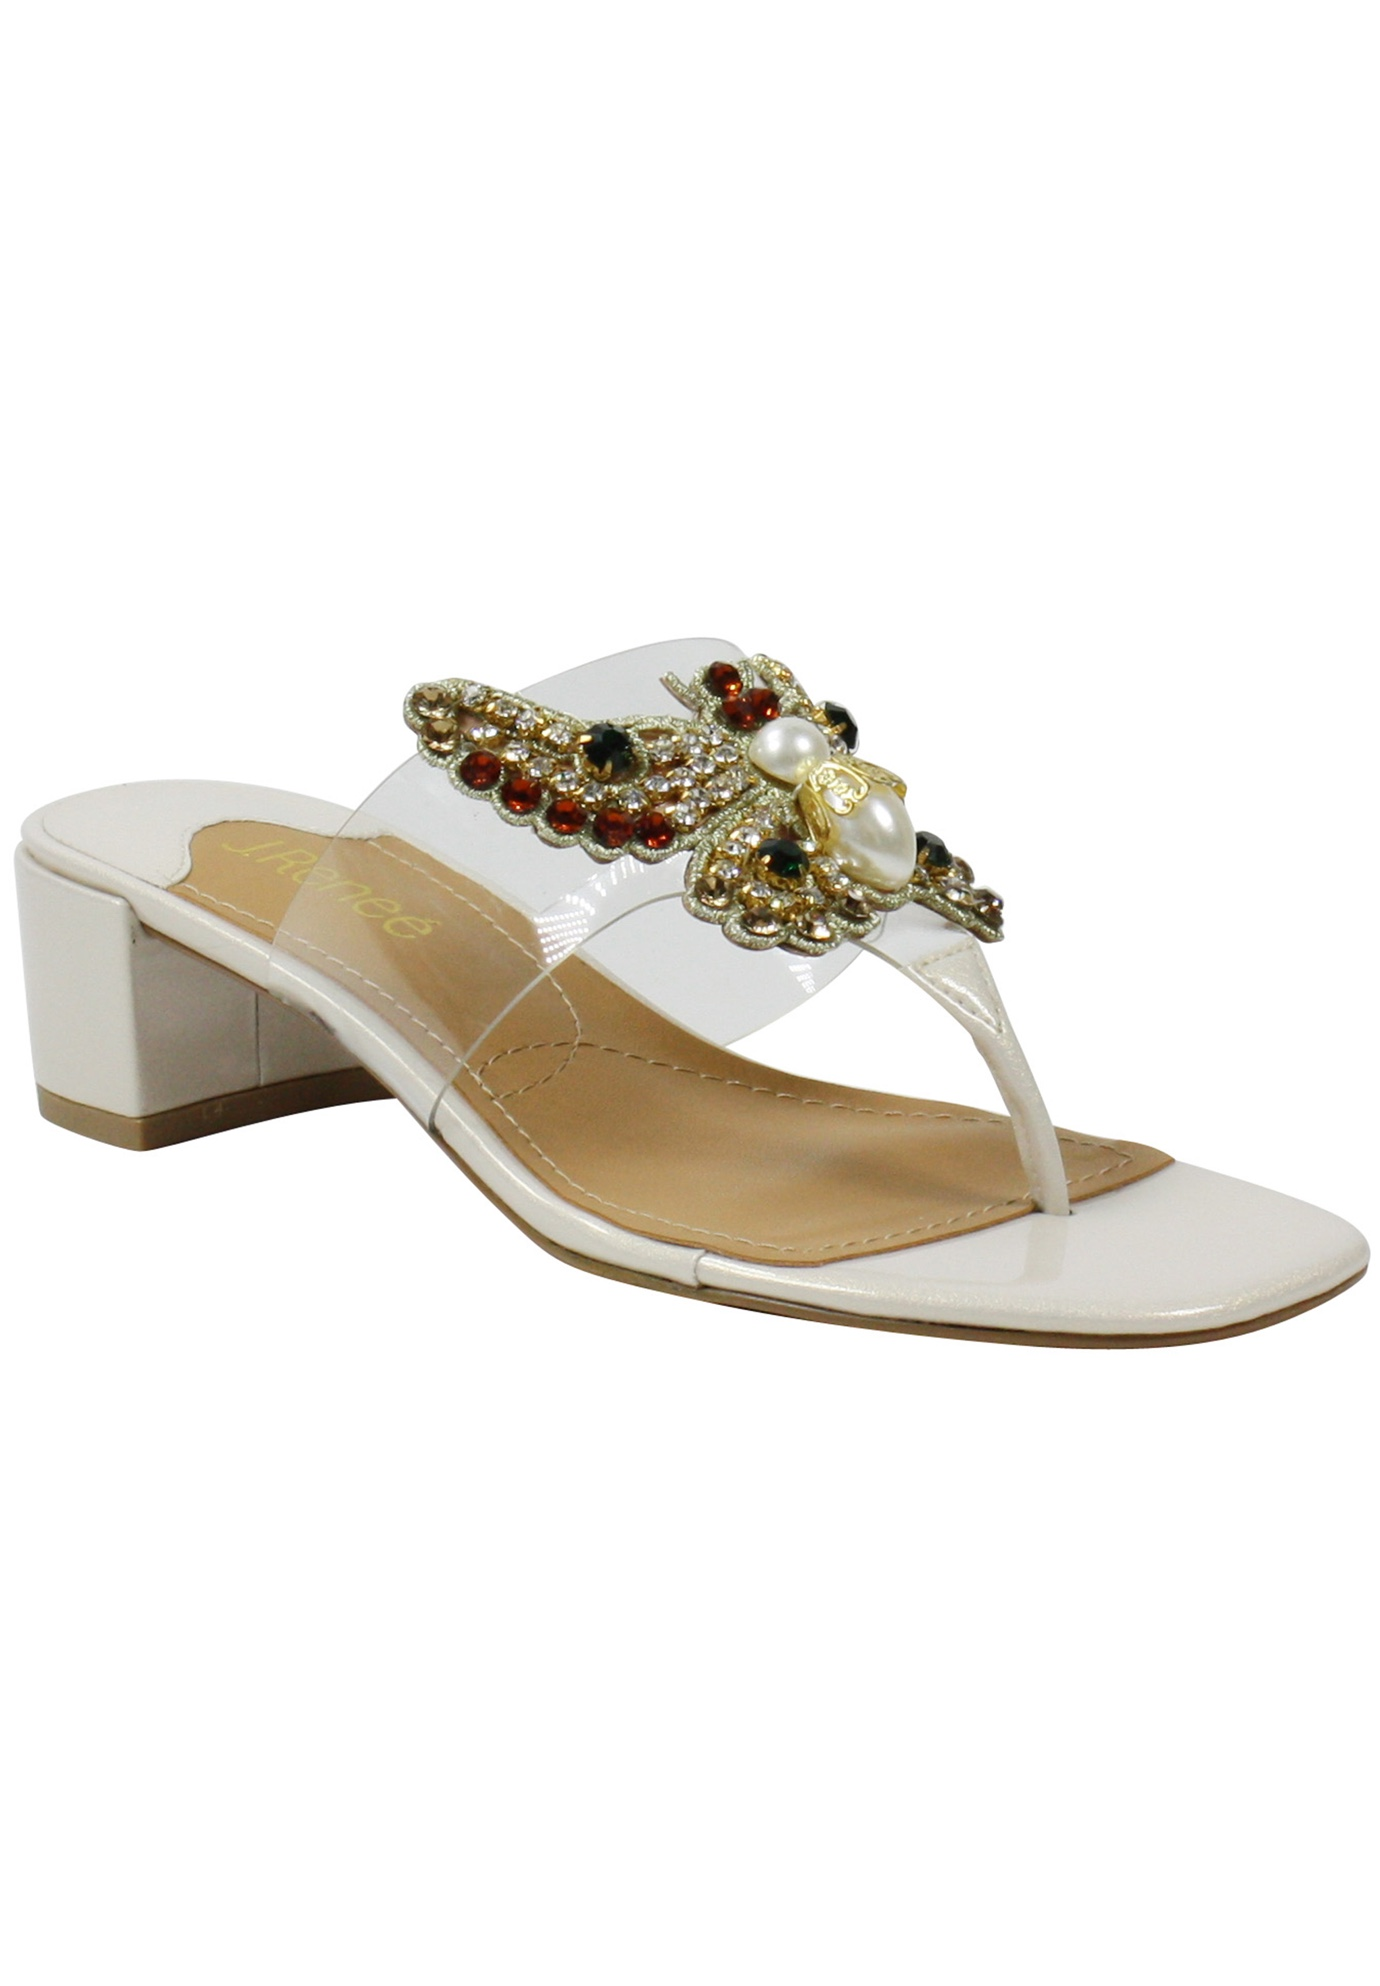 Wynyard Sandals by J. Renee,